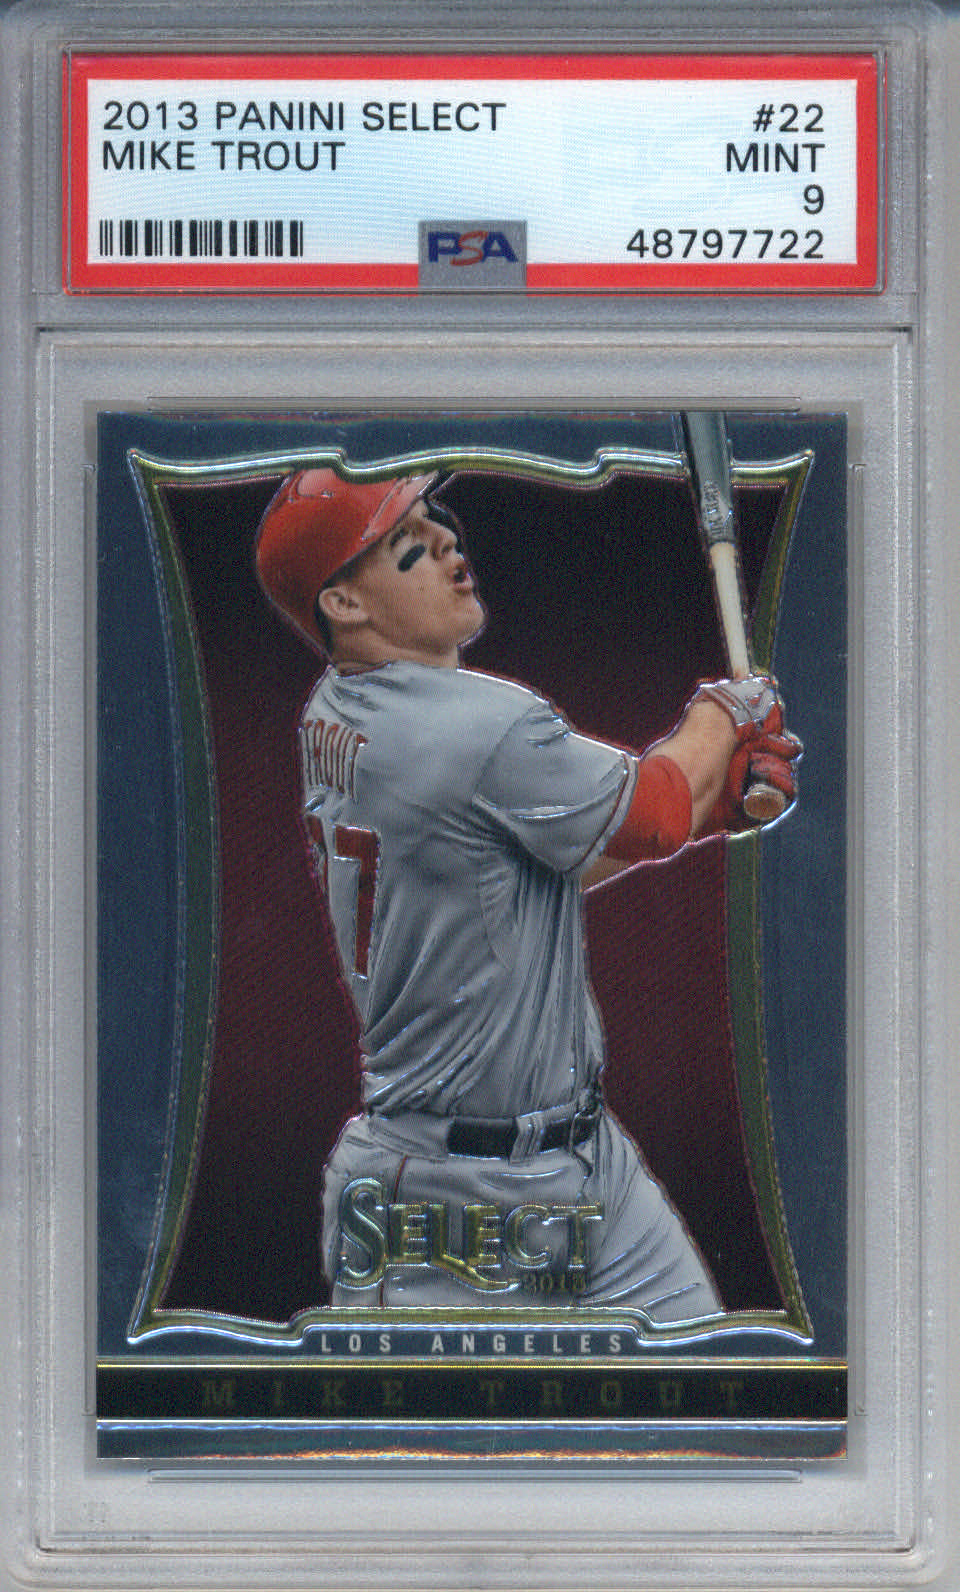 2013 Panini Select #22 Mike Trout PSA 9